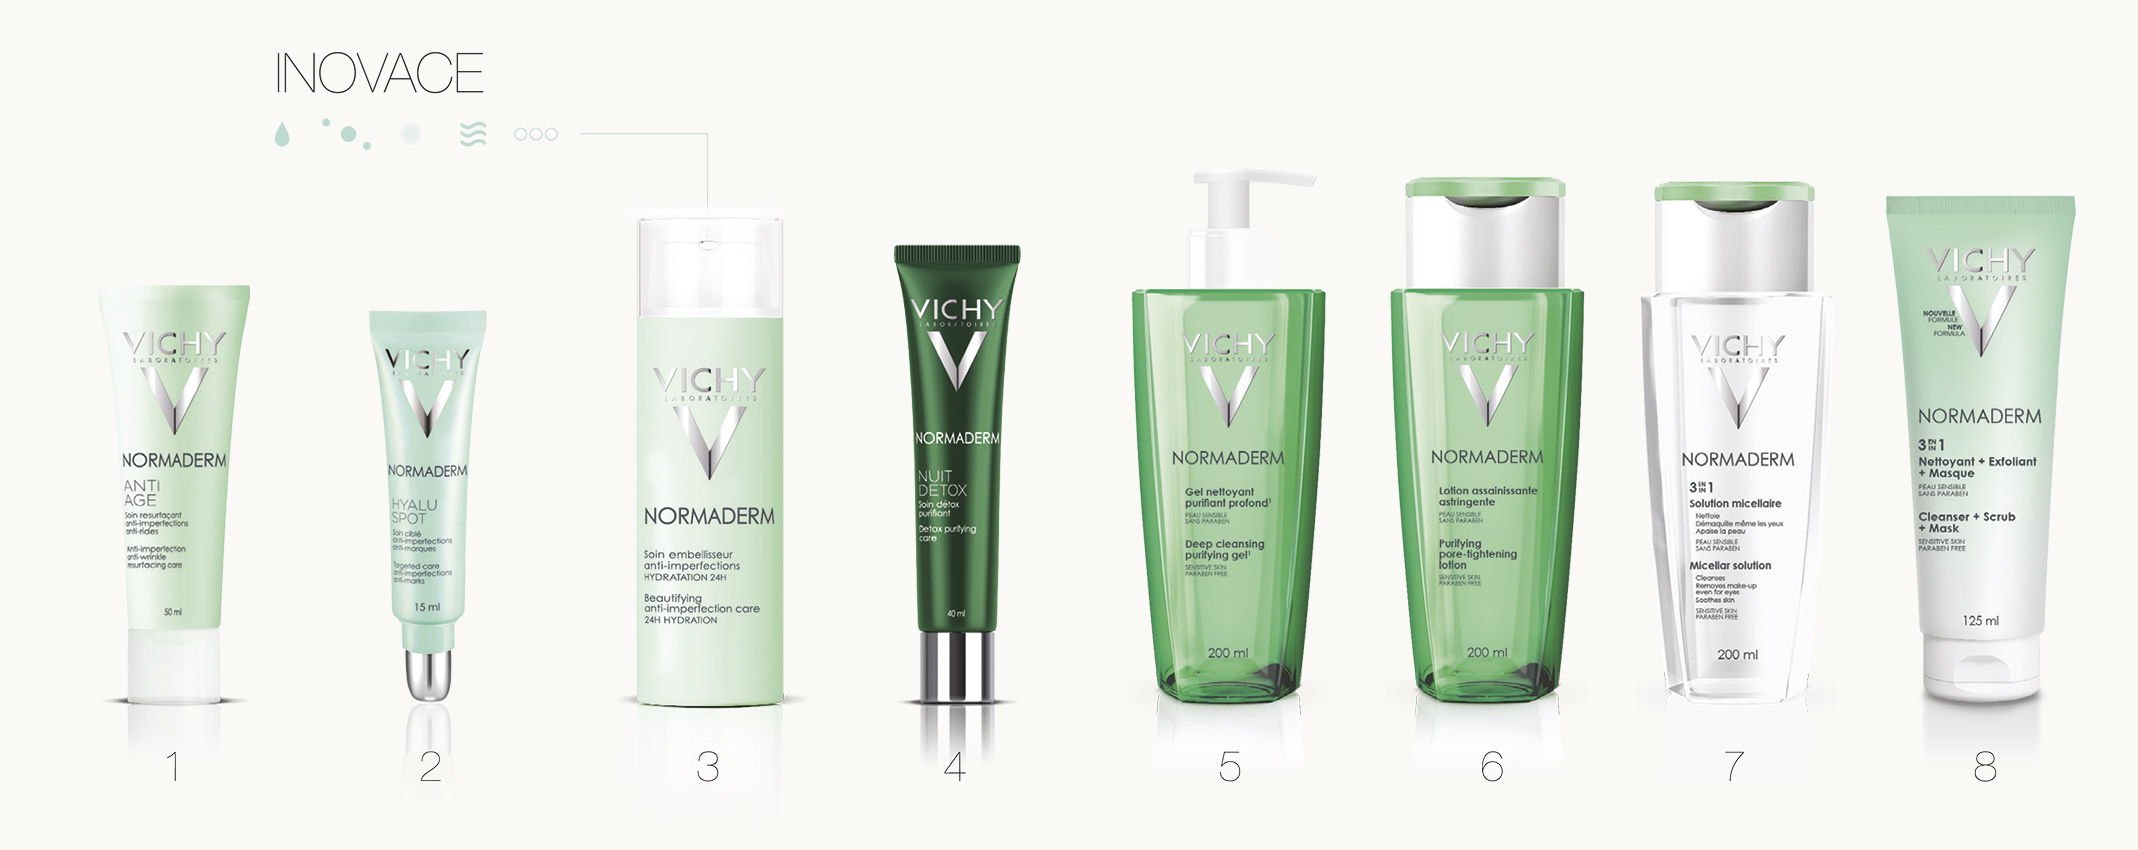 Gama Vichy Normaderm